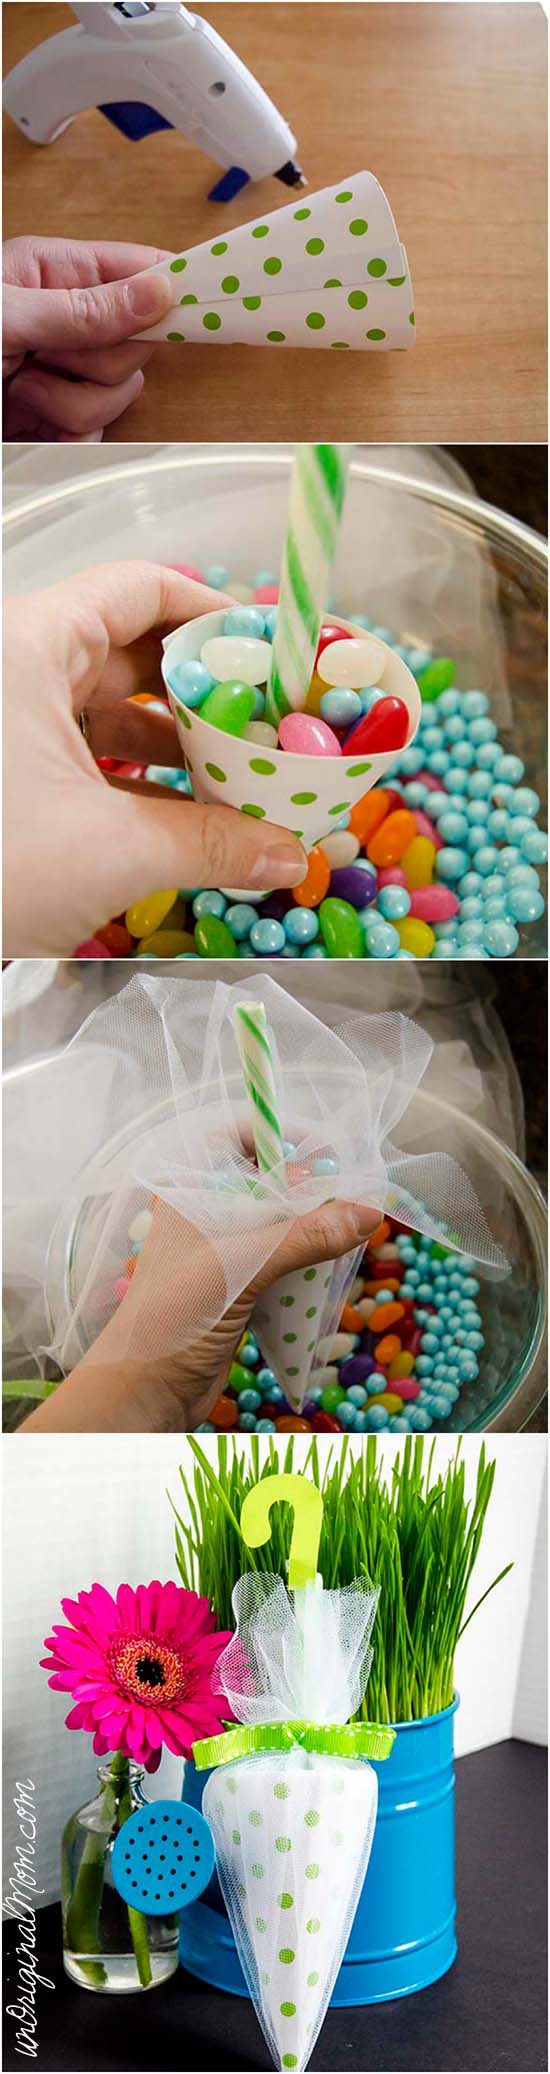 picture of DIY umbrella favors